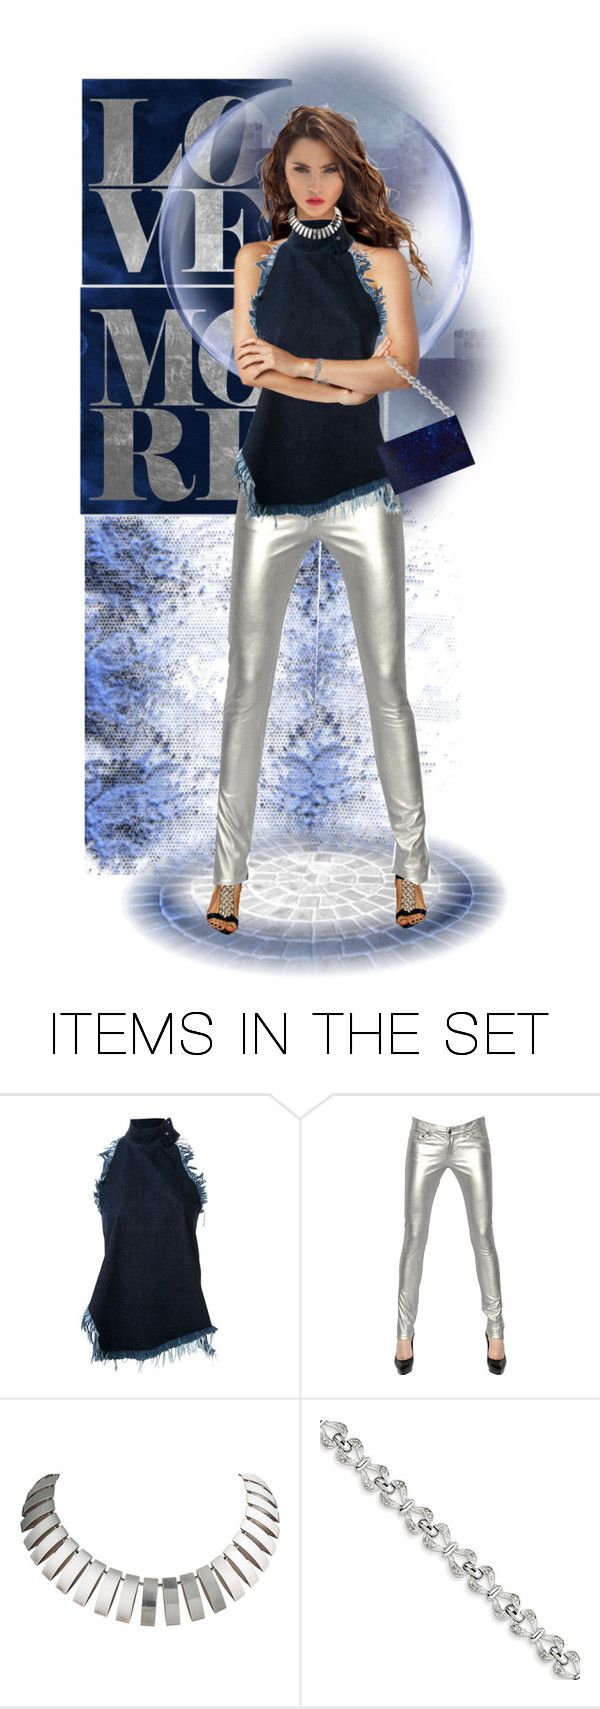 """""""Loving this Marques'almeida frayed denim halter!"""" by jothomas ❤ liked on Polyvore featuring art"""